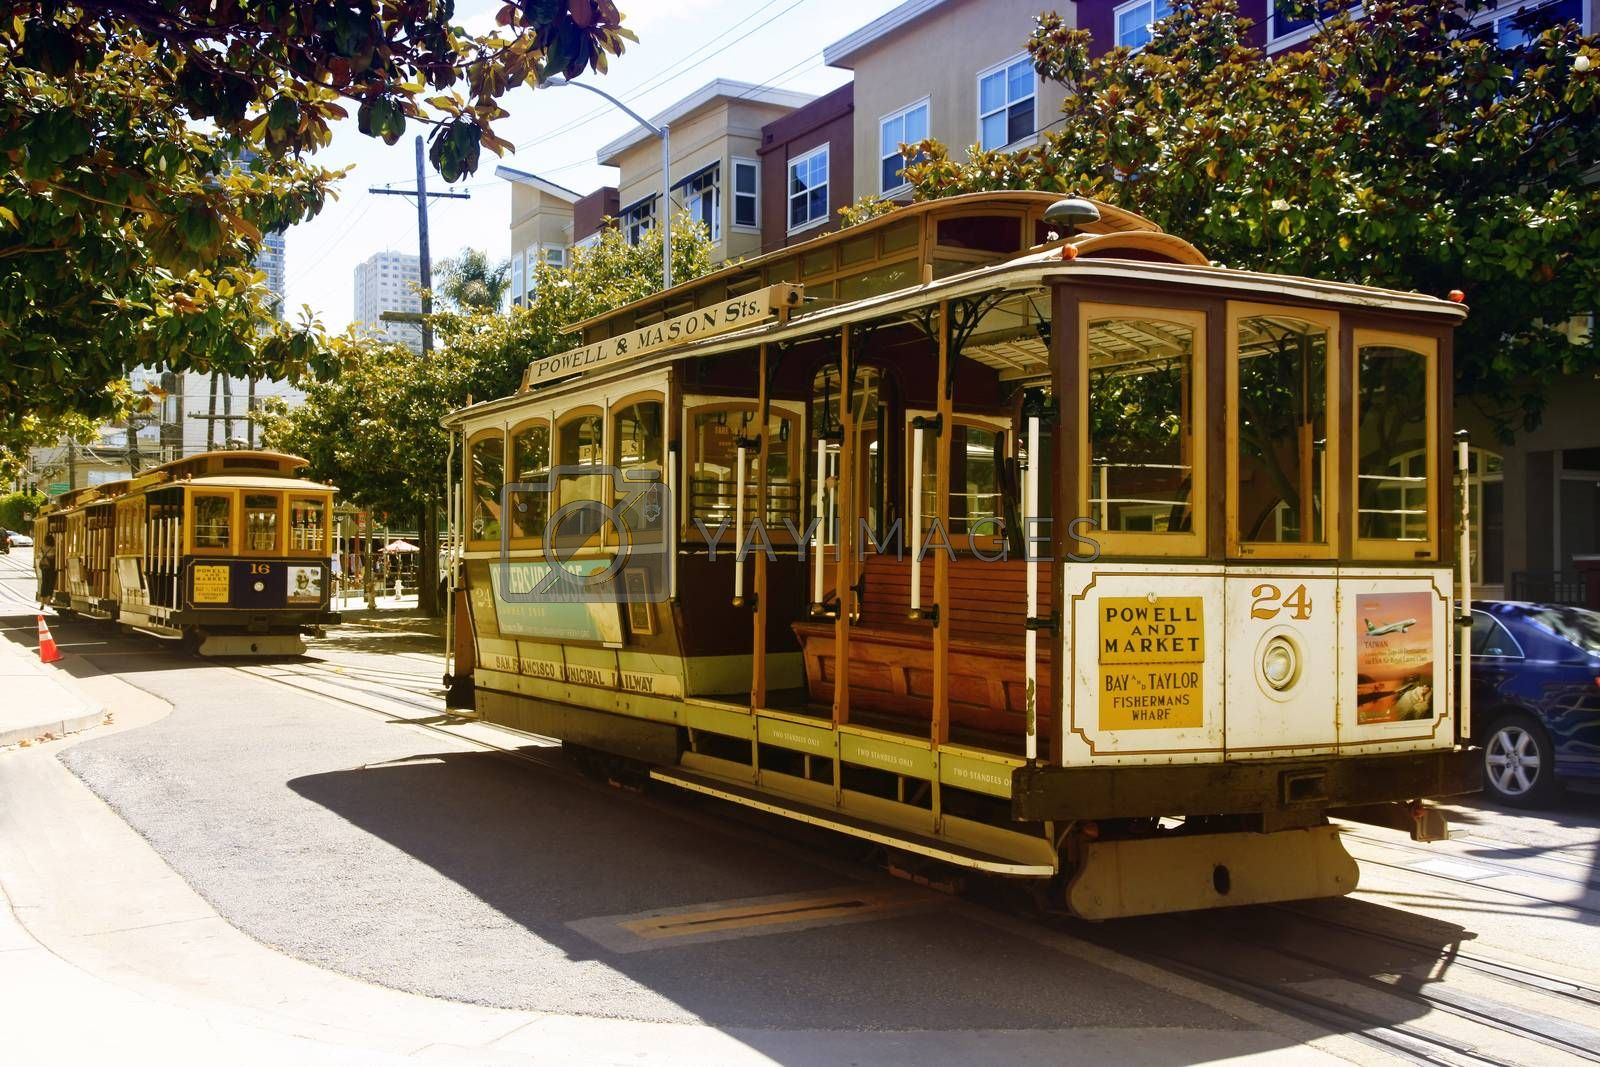 SAN FRANCISCO, CA, USA - AUGUST 17, 2013: Passengers ride in a cable car on August 17, 2013 in San Francisco. It is the most popular way to get around the City of San Fransisco which is in service since 1873.